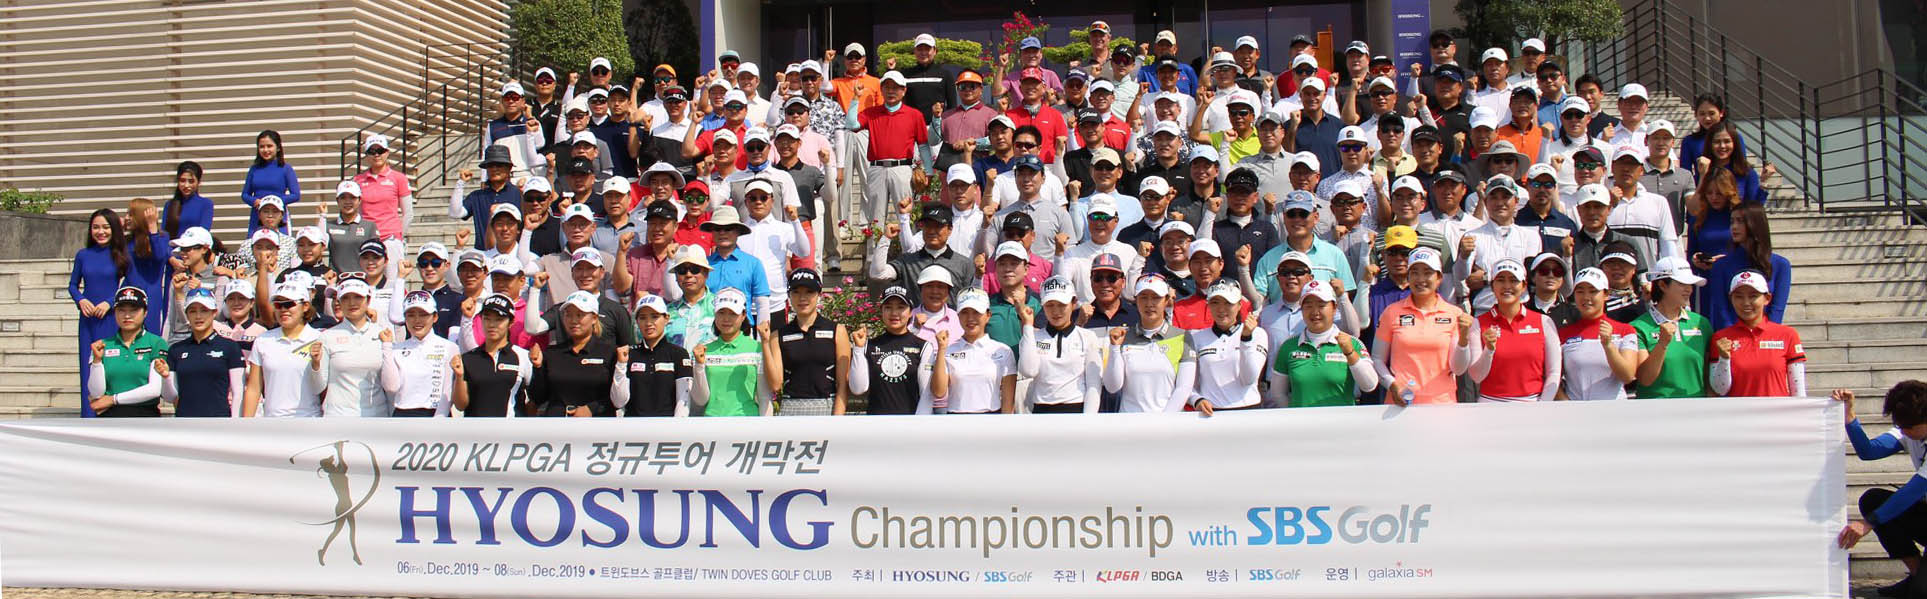 HYOSUNG Championship with SBS Golf on Dec 8th - 10th - 2019